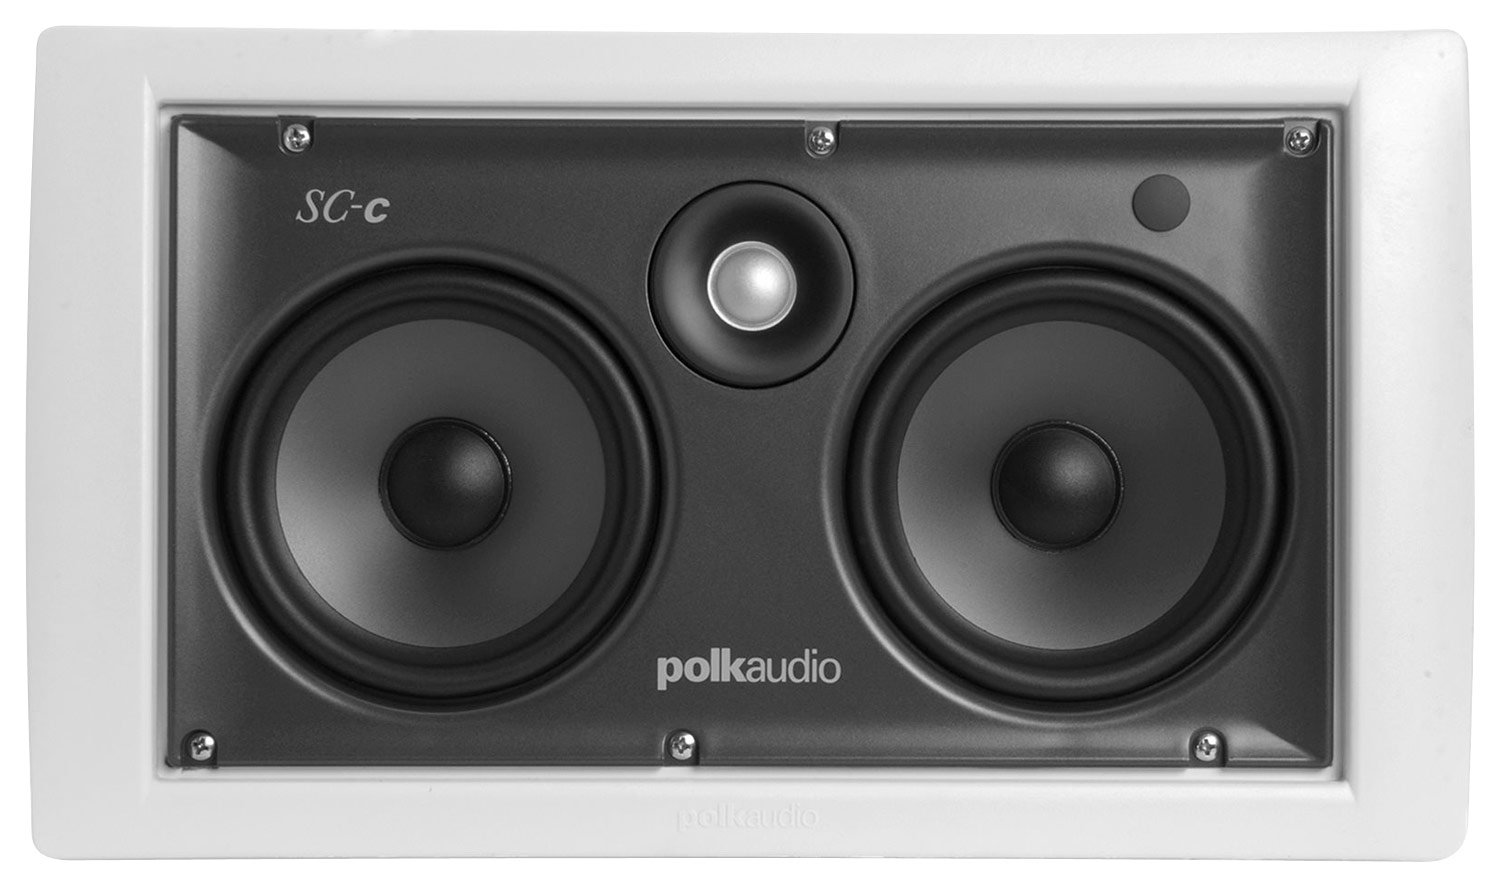 POLK AUDIO SC C In-Wall Speaker Home Audio Crossover, White (AW0355-A)